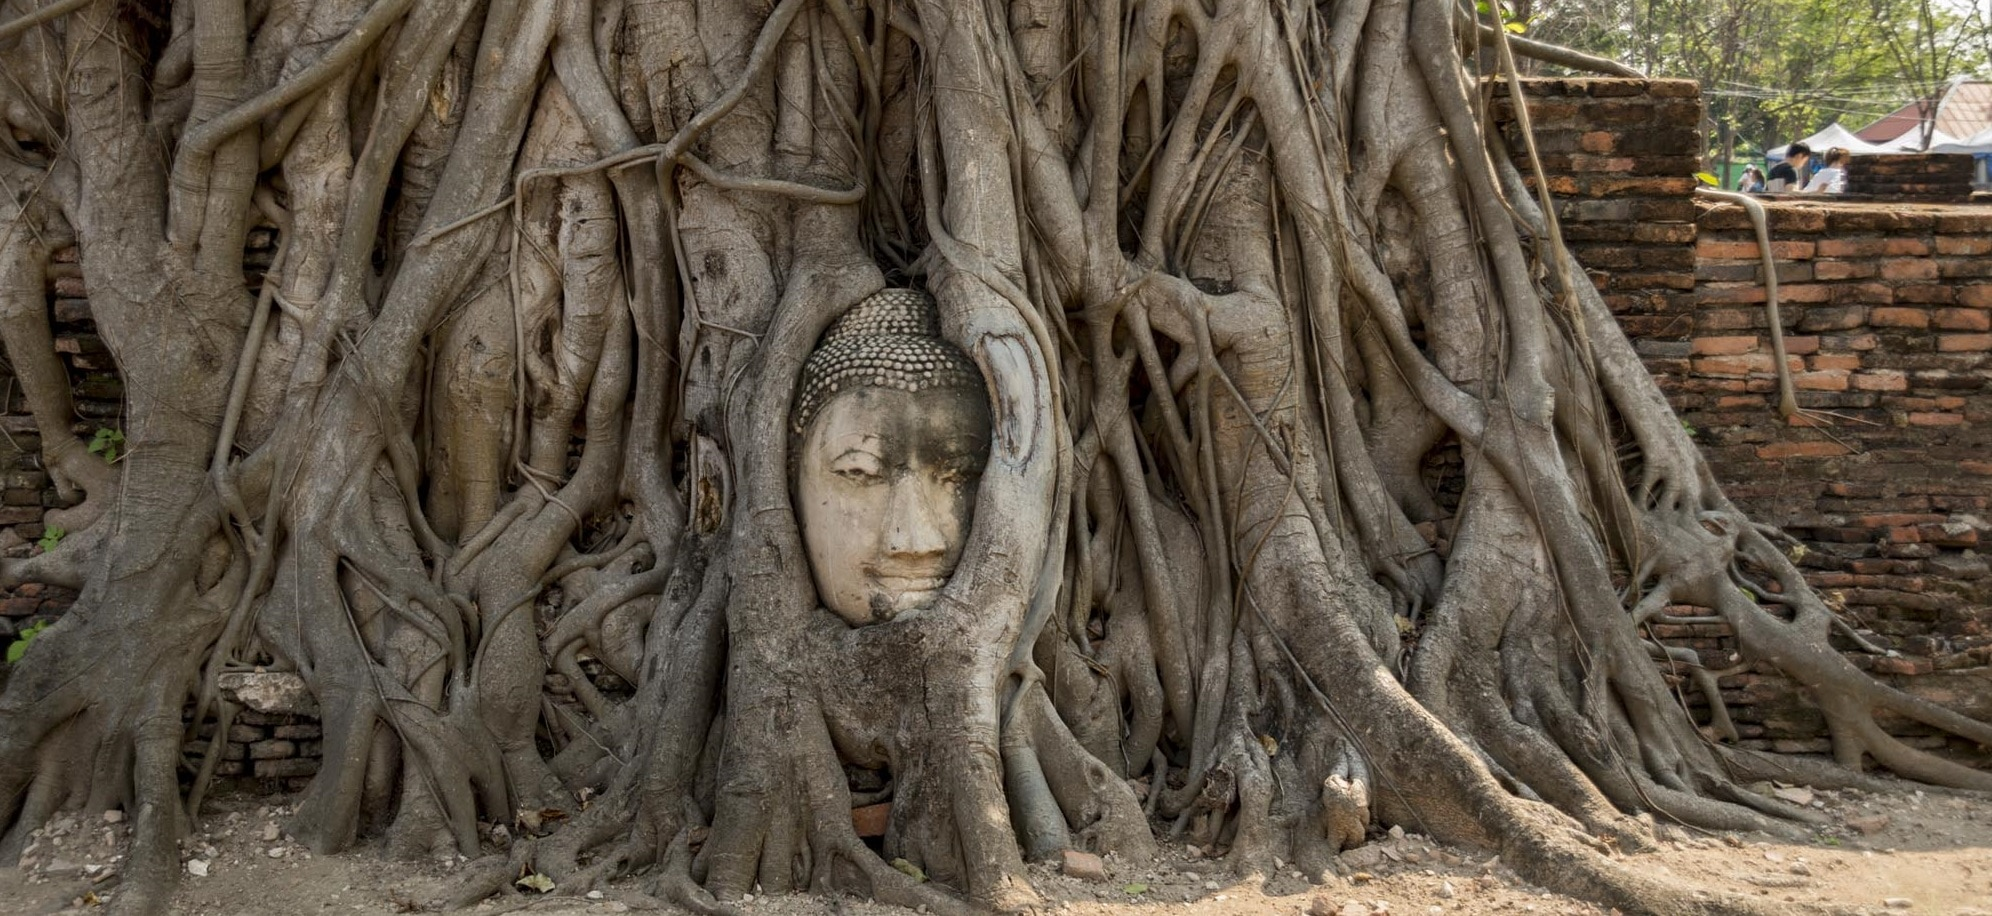 Full Guide To The Most Stunning Ayutthaya Temples And Attractions